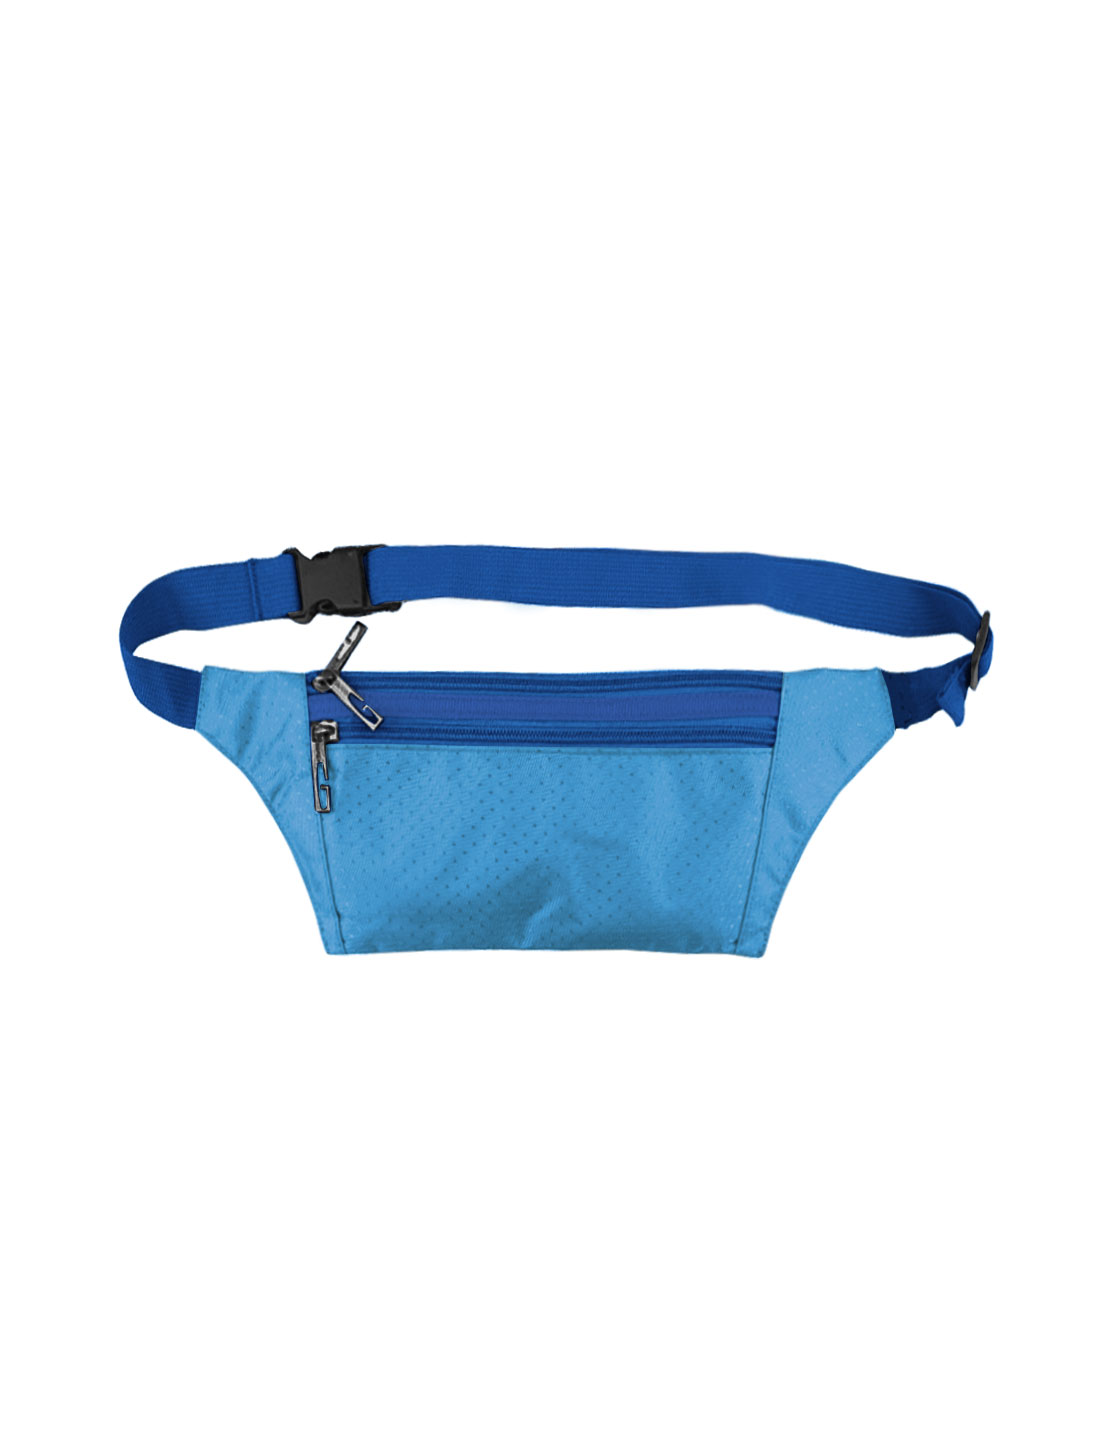 Unisex Three Zipper Pockets Argyle Design Waist Bag Sky Blue